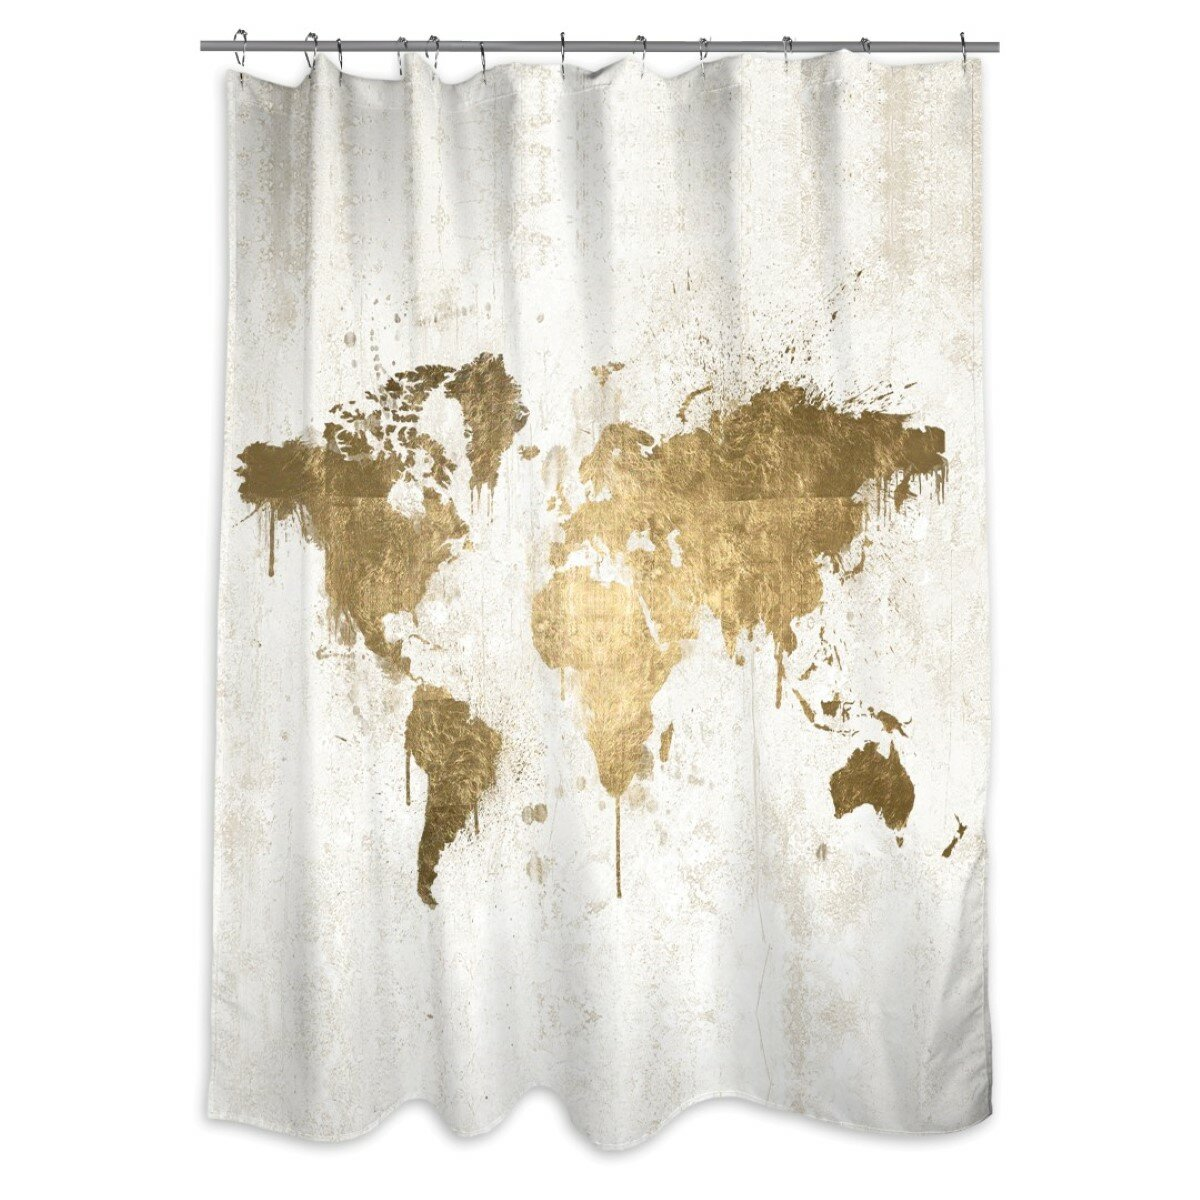 Everalda Mapamundi Single Shower Curtain Reviews